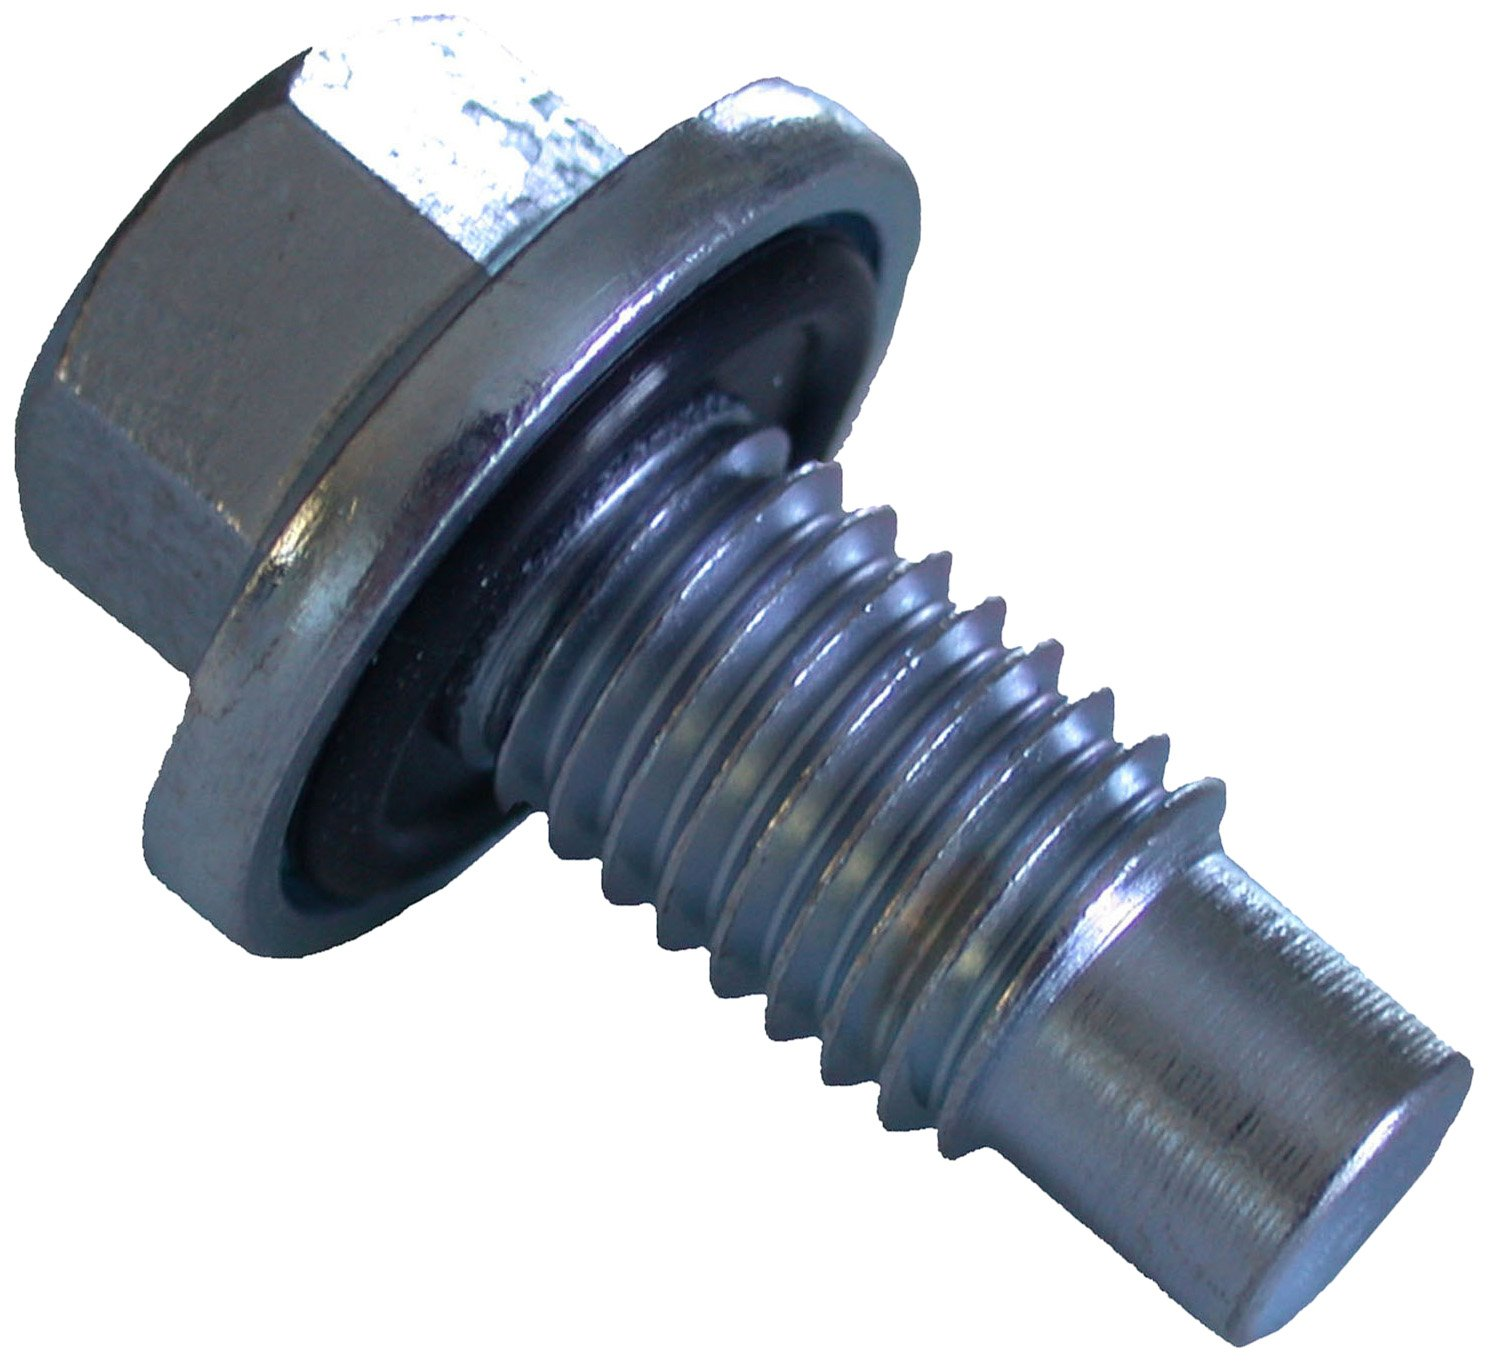 Needa Parts 653076 M12-1.75 Oil Drain Plug for GM